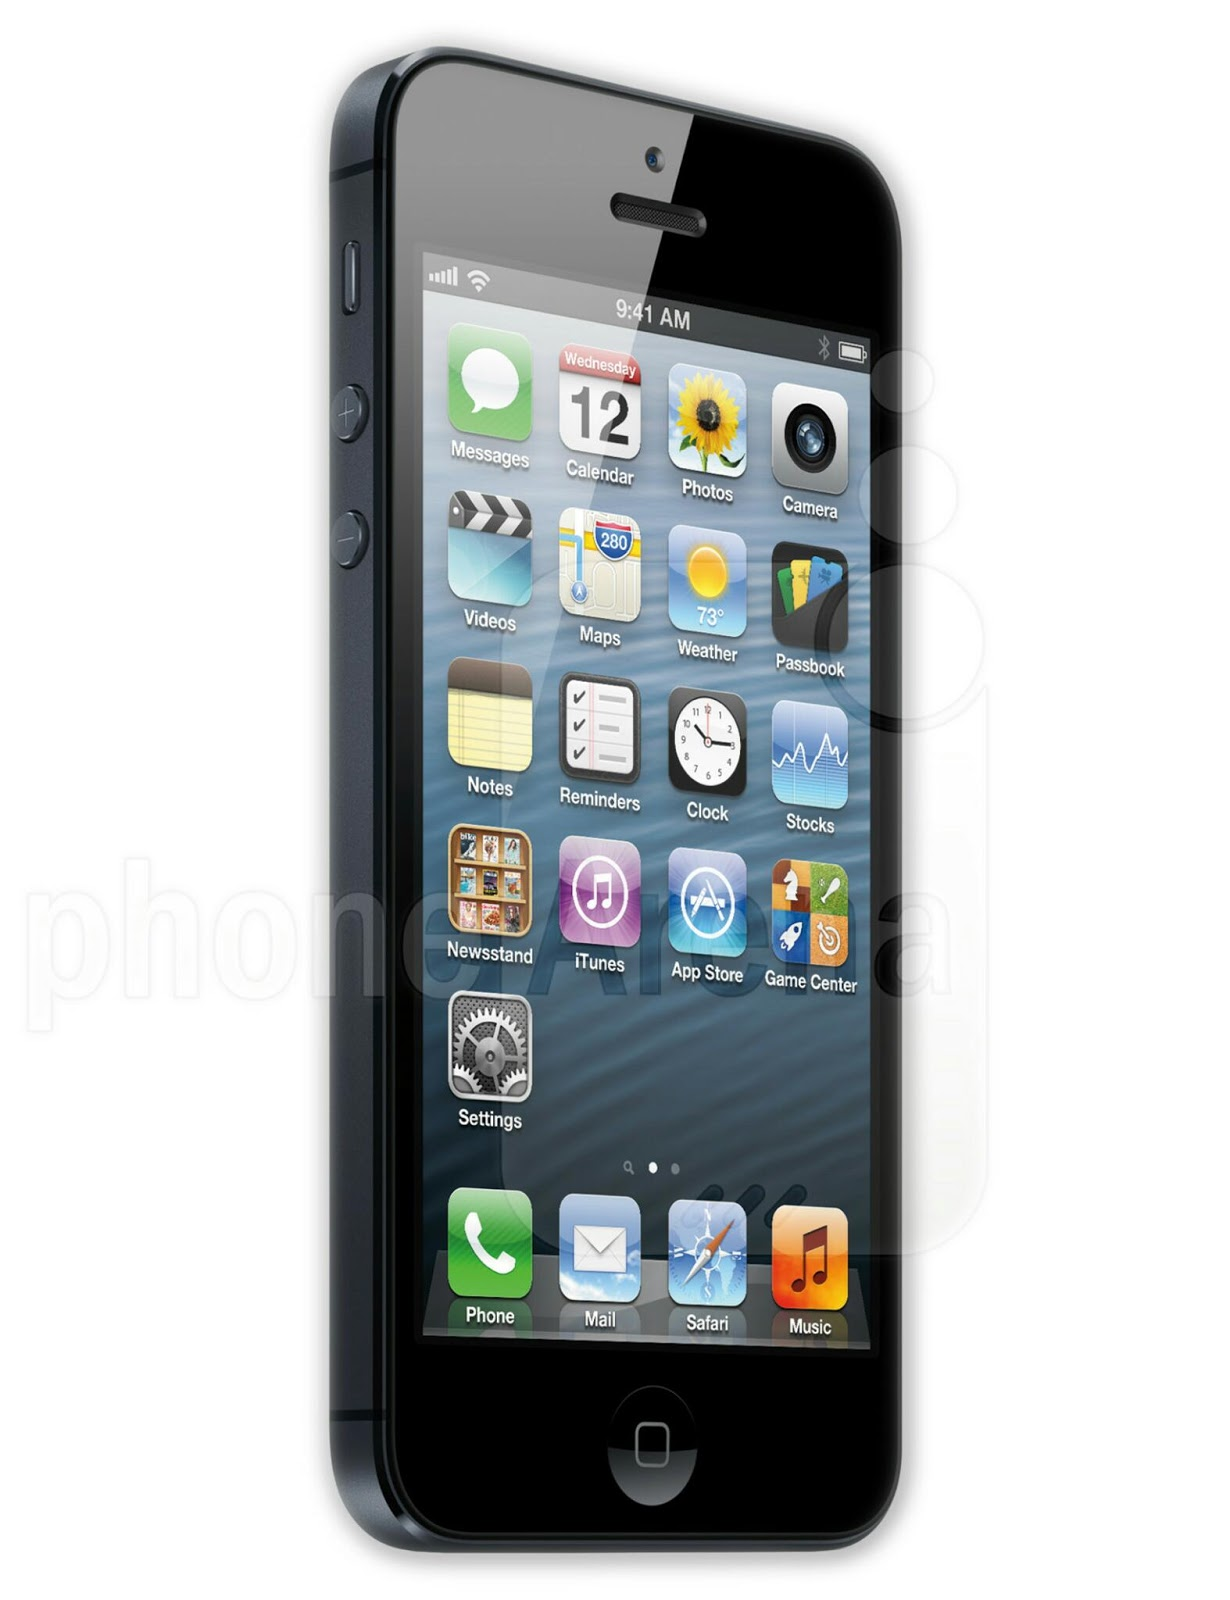 used iphone 5 blackberryhub ikeja uk used apple i phone prices nigeria 13209